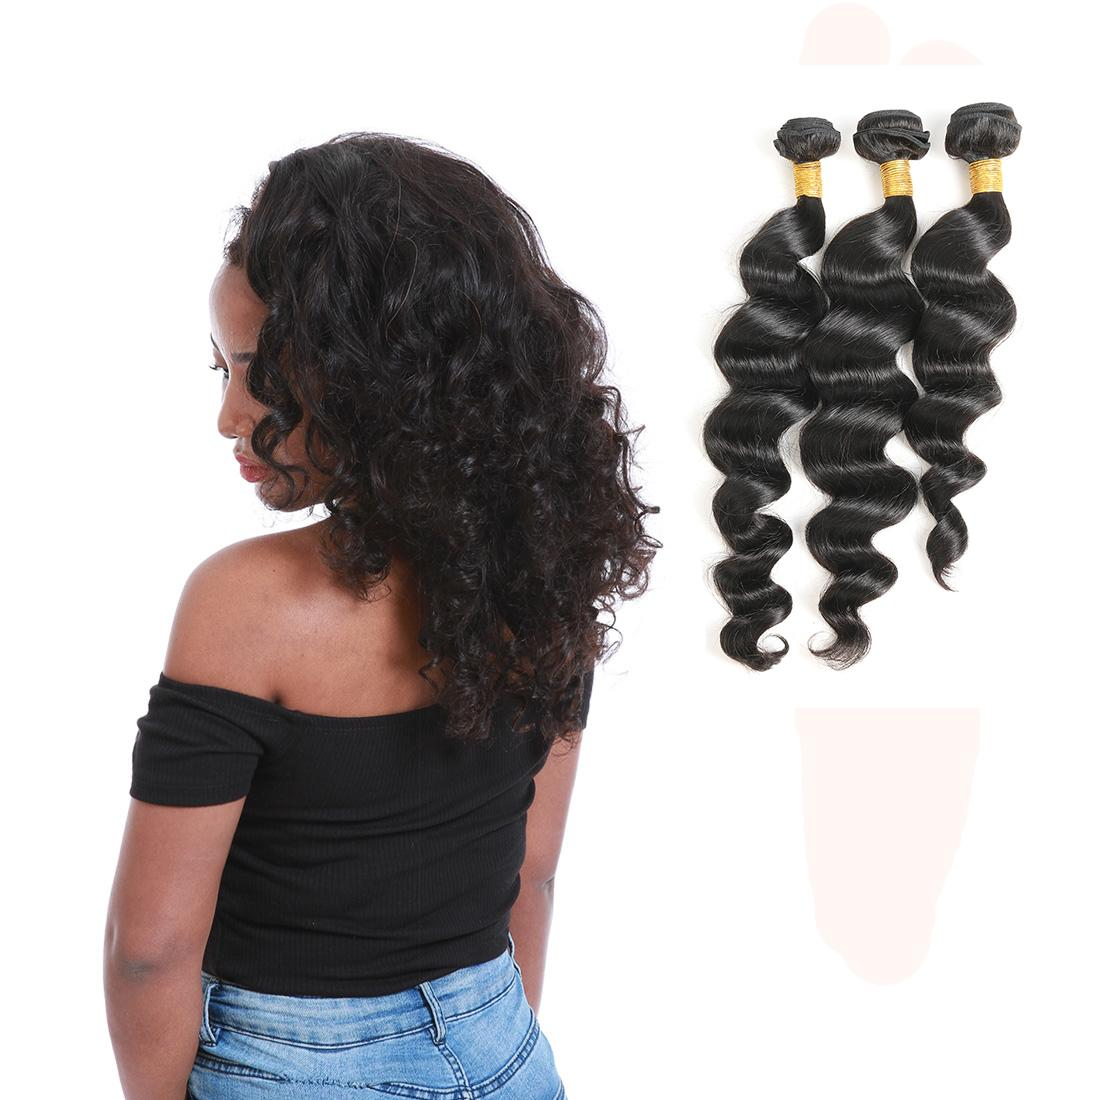 Brazilian Virgin Cuticle Aligned Hair Extension Deep Wave Bundles